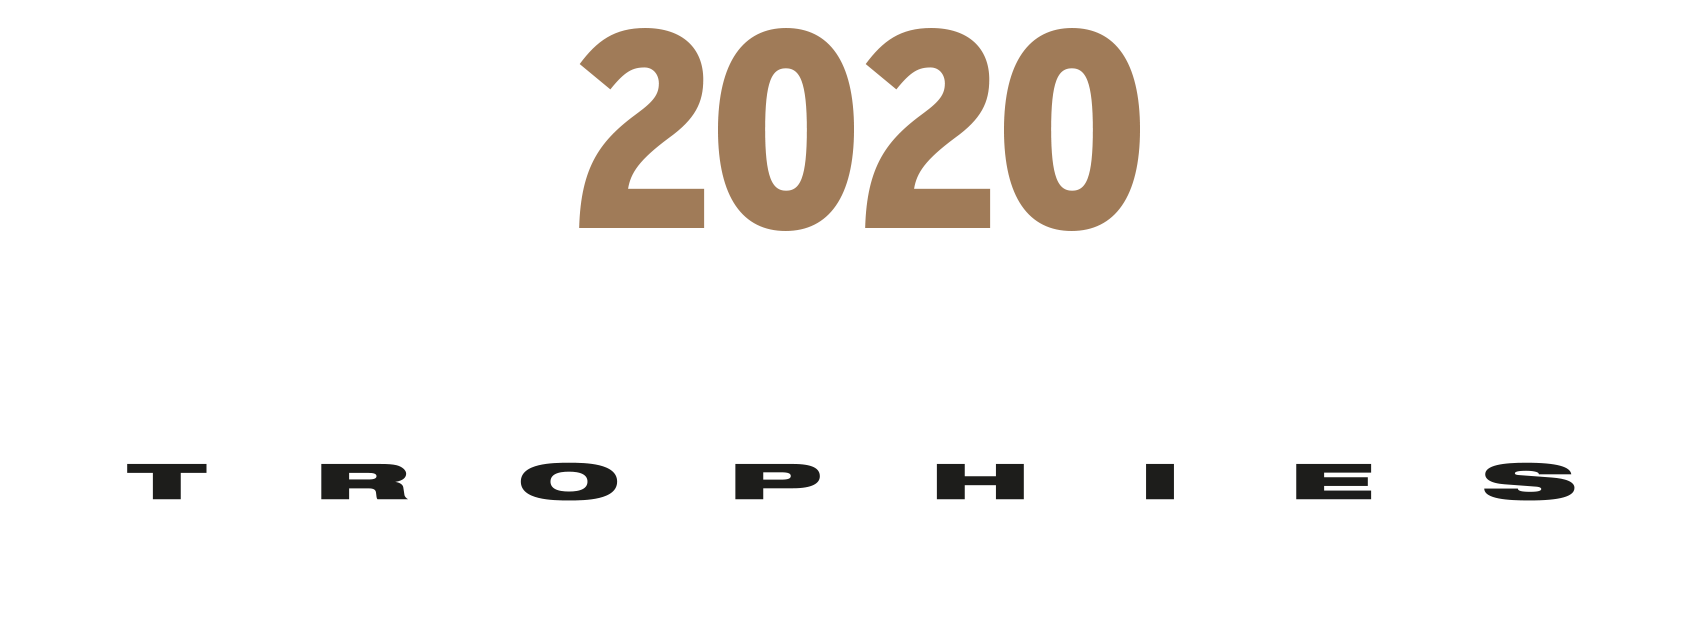 logo-world-yachts-trophies-2020-19th-edition-blanc-new